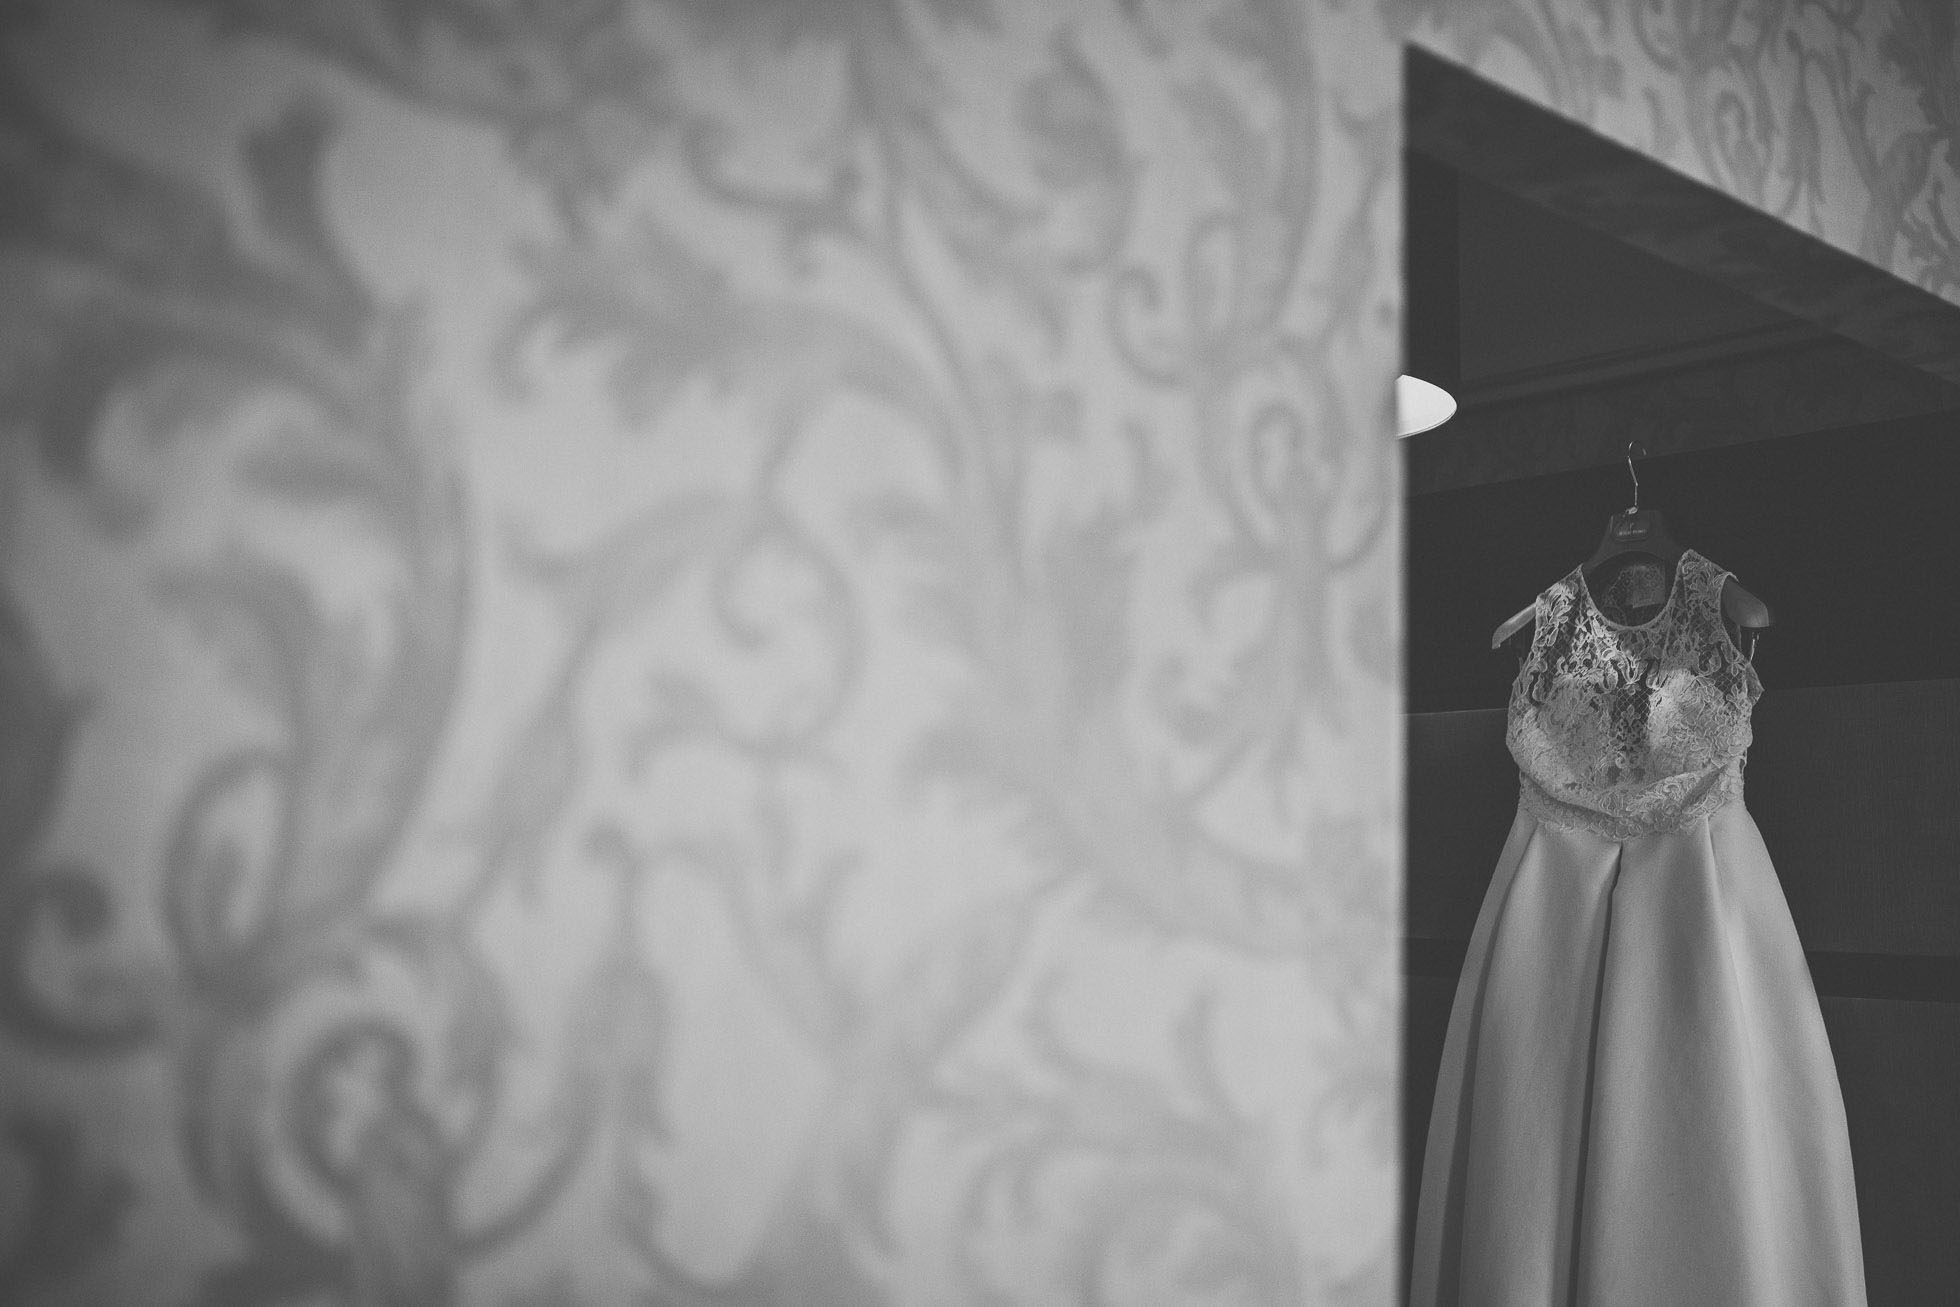 allerton_castle_wedding_photographer-8.jpg